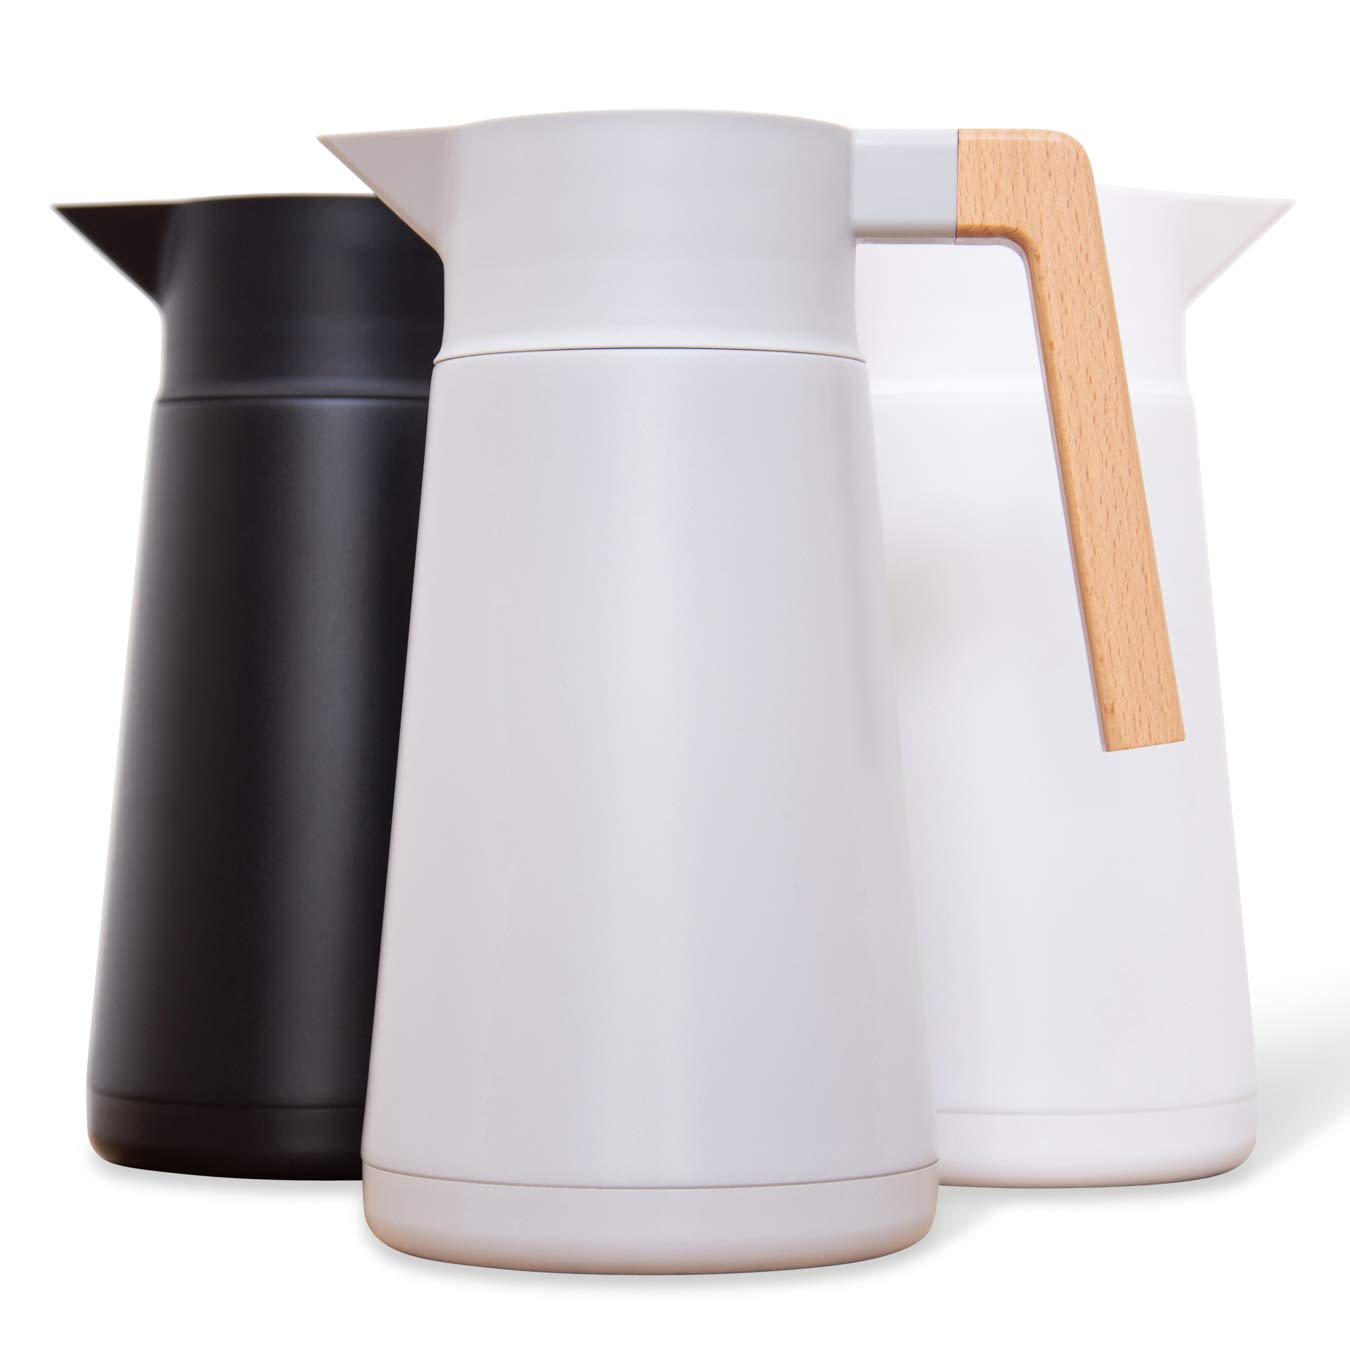 Large Thermal Coffee Carafe - Stainless Steel, Double Walled Thermal Pots For Coffee and Teas by Hastings Collective - Gray, Vacuum Carafes With Removable Tea Infuser and Strainer | 68 Oz.